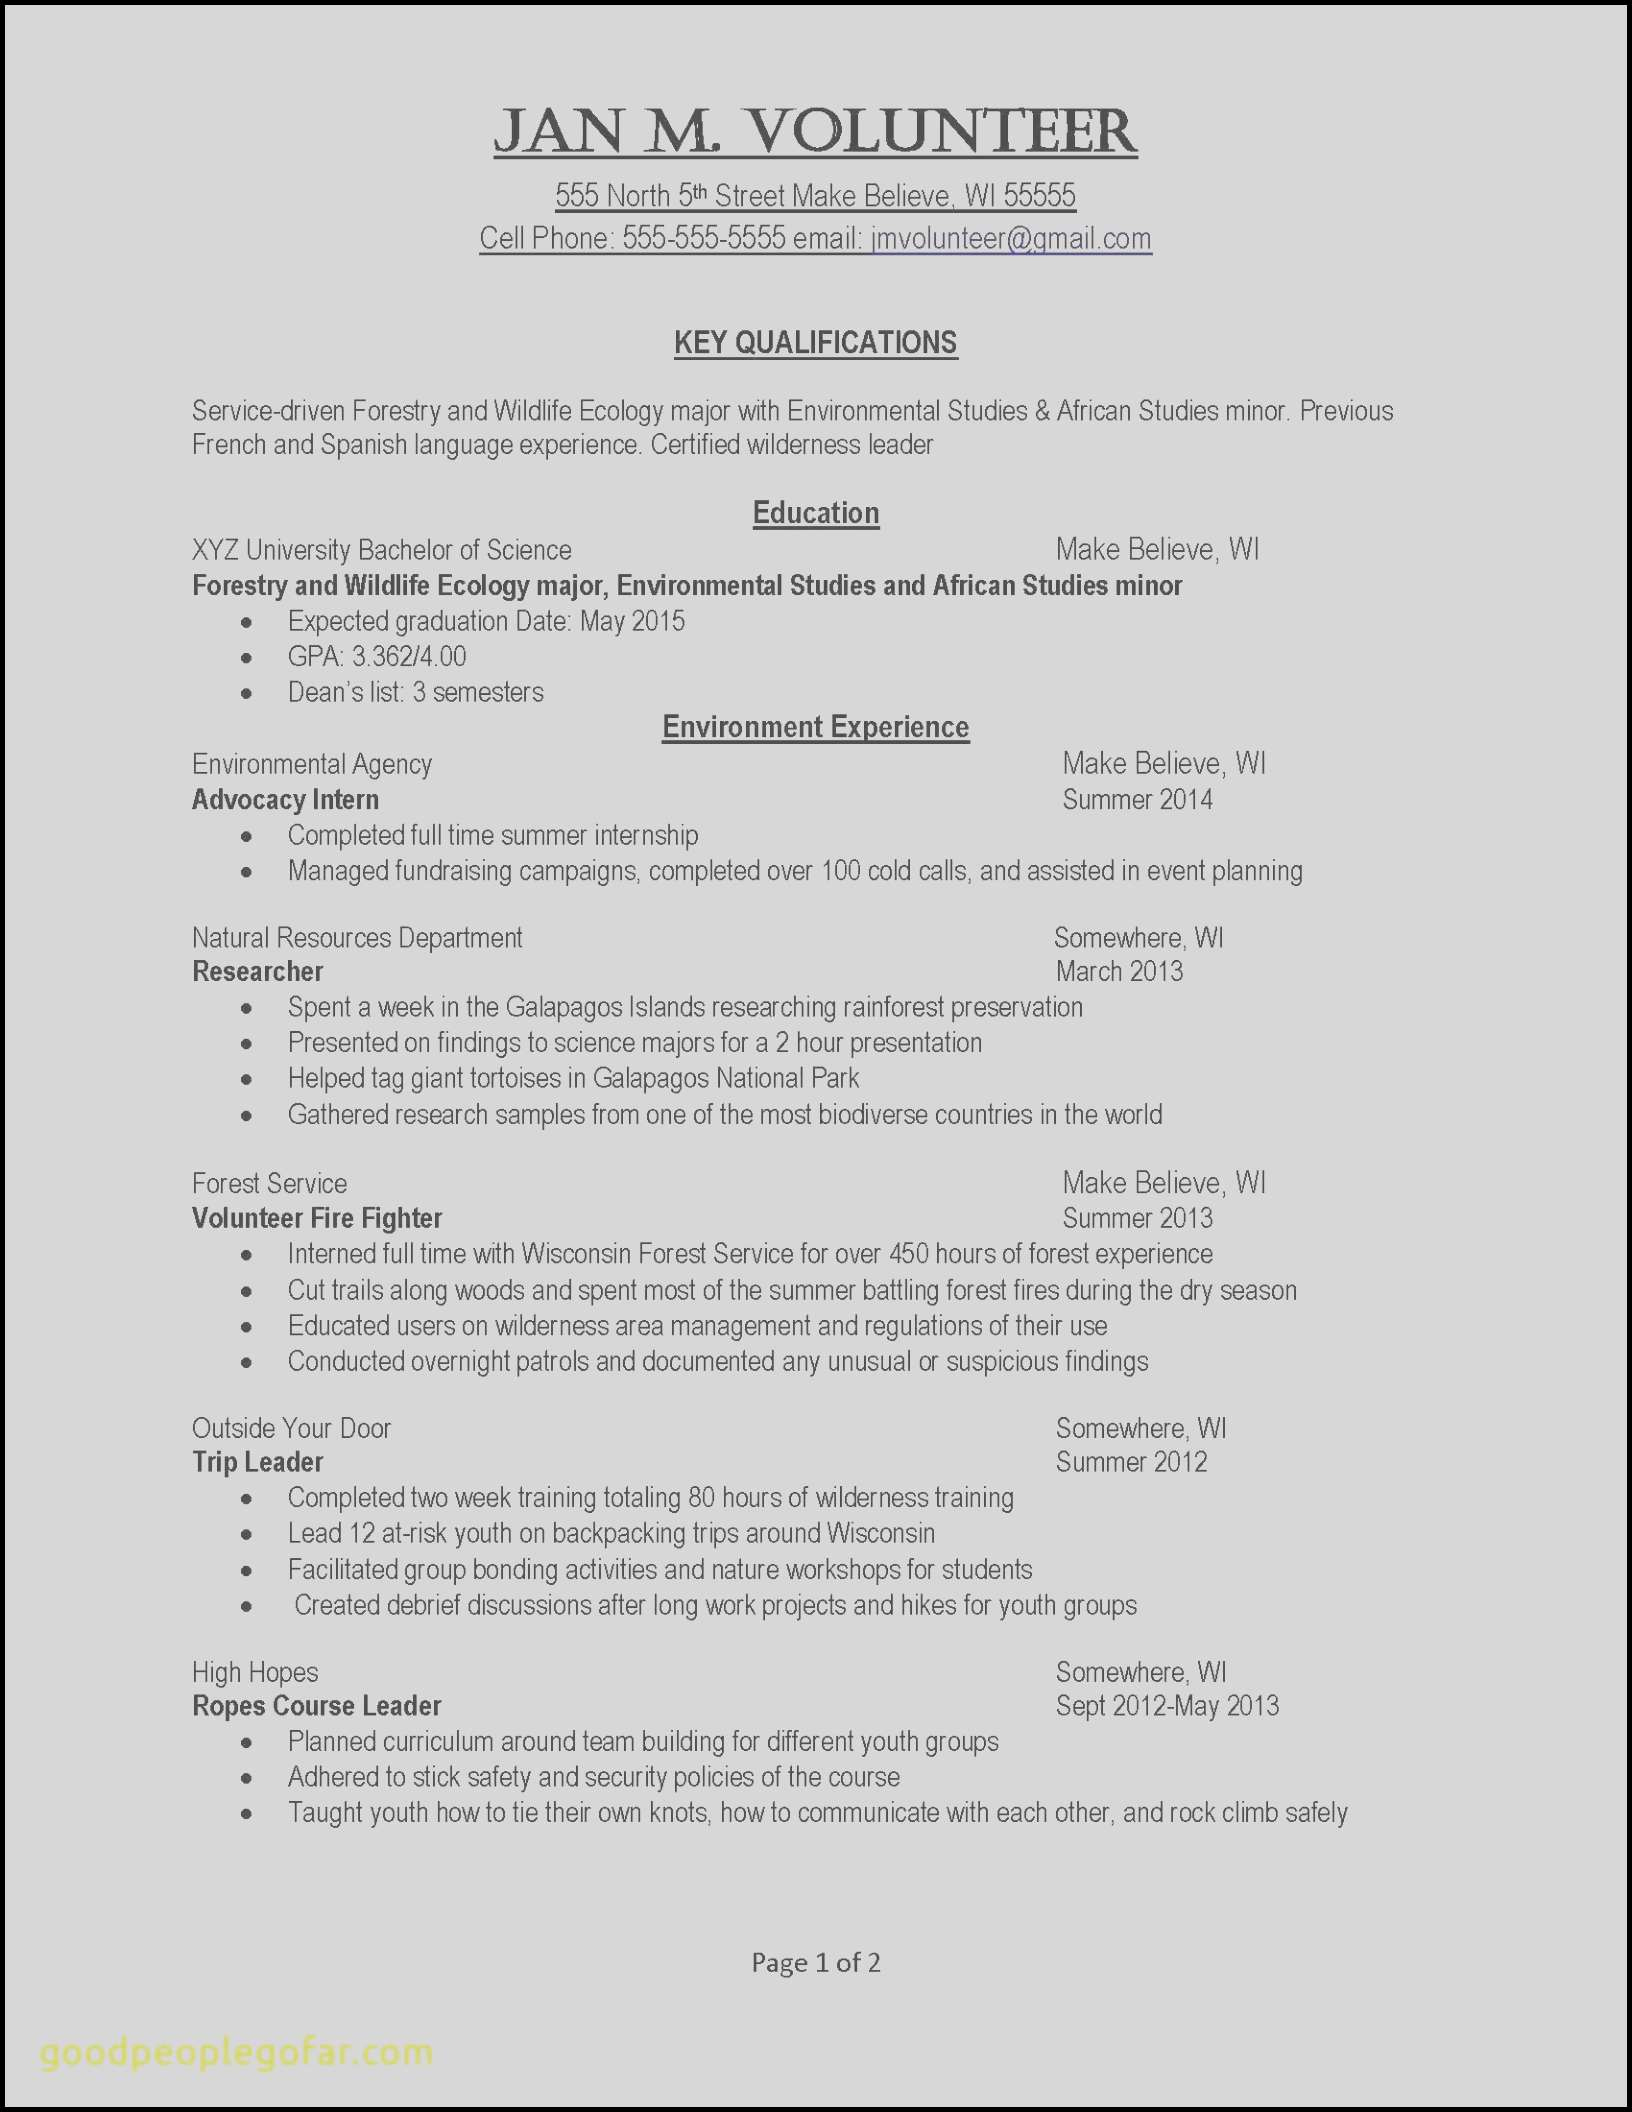 Where to Make A Resume - How to Make A Resume for Jobs Unique Resume for Older Workers Fresh